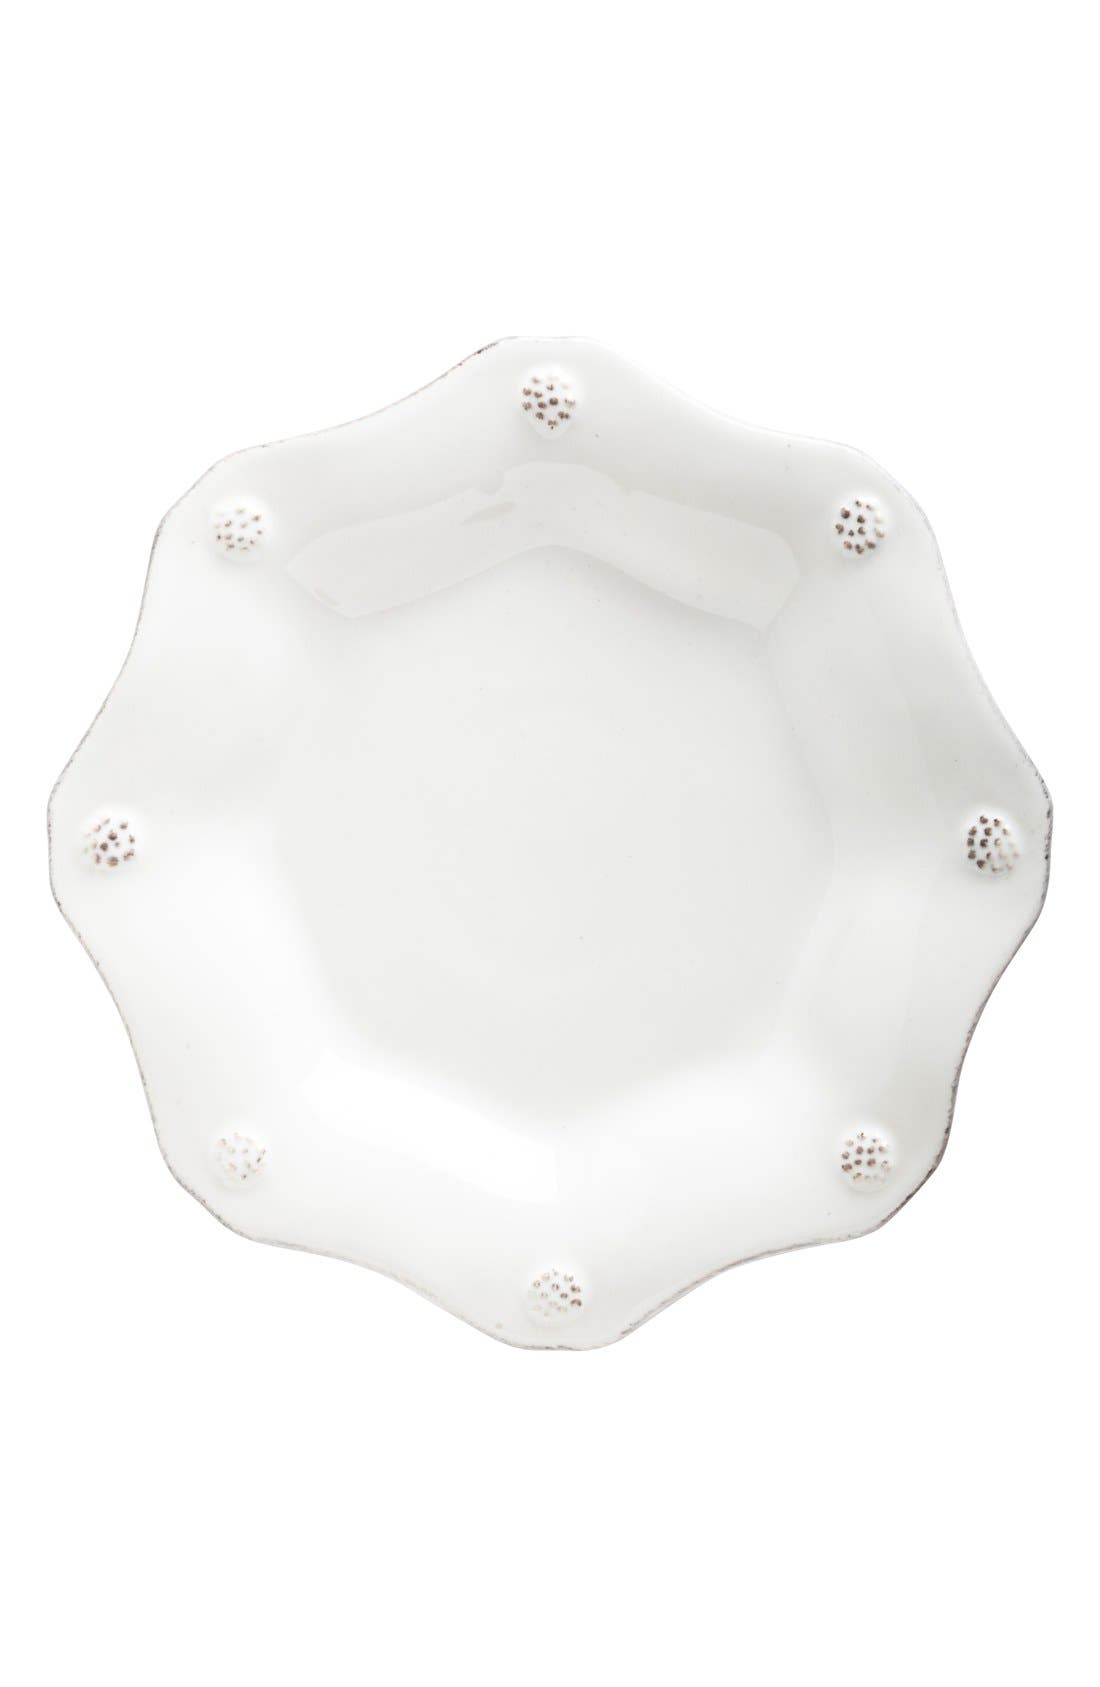 JULISKA 'Berry and Thread' Scalloped Tea Plate